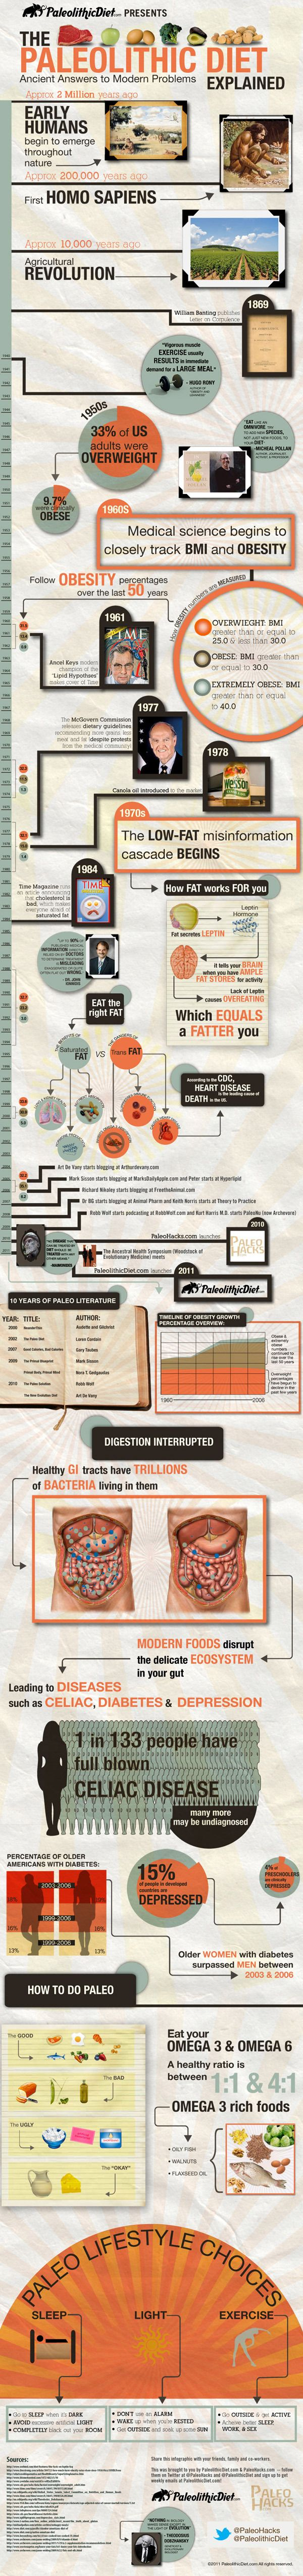 http://infographic.paleolithicdiet.com/600px/PaleolithicDietExplained-600.original.jpg